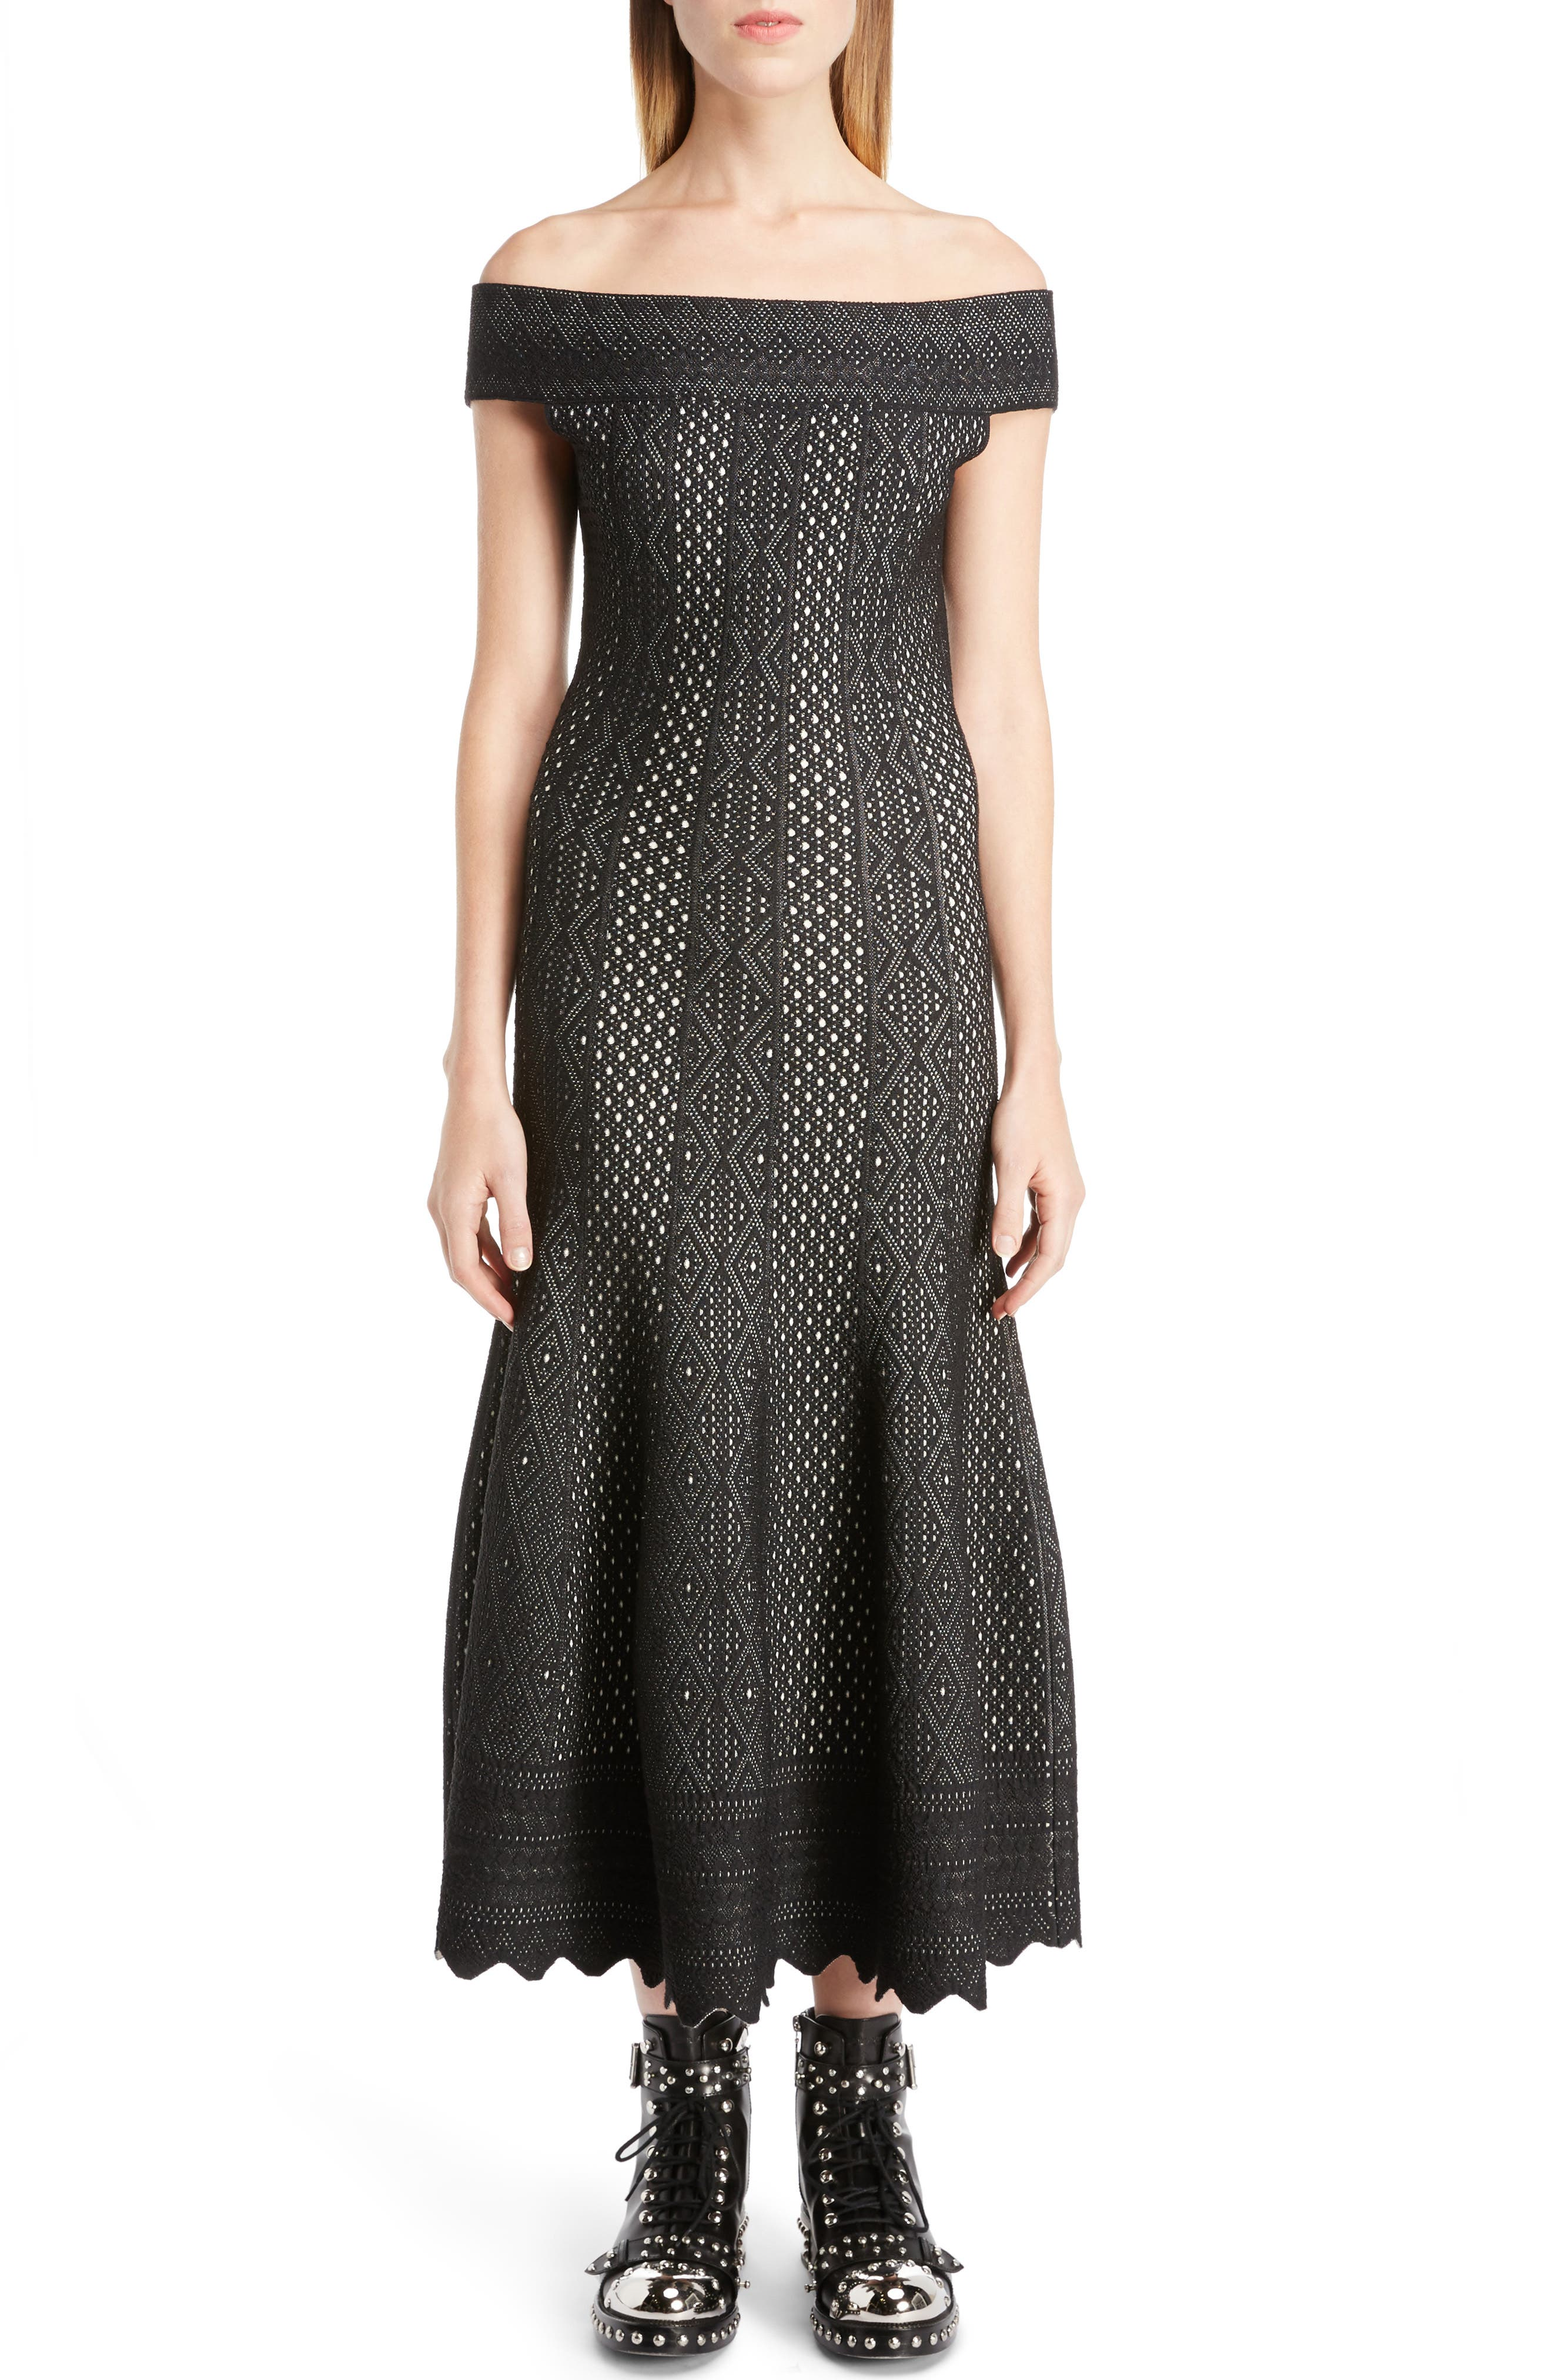 Alternate Image 1 Selected - Alexander McQueen Off the Shoulder Bicolor Jacquard Dress